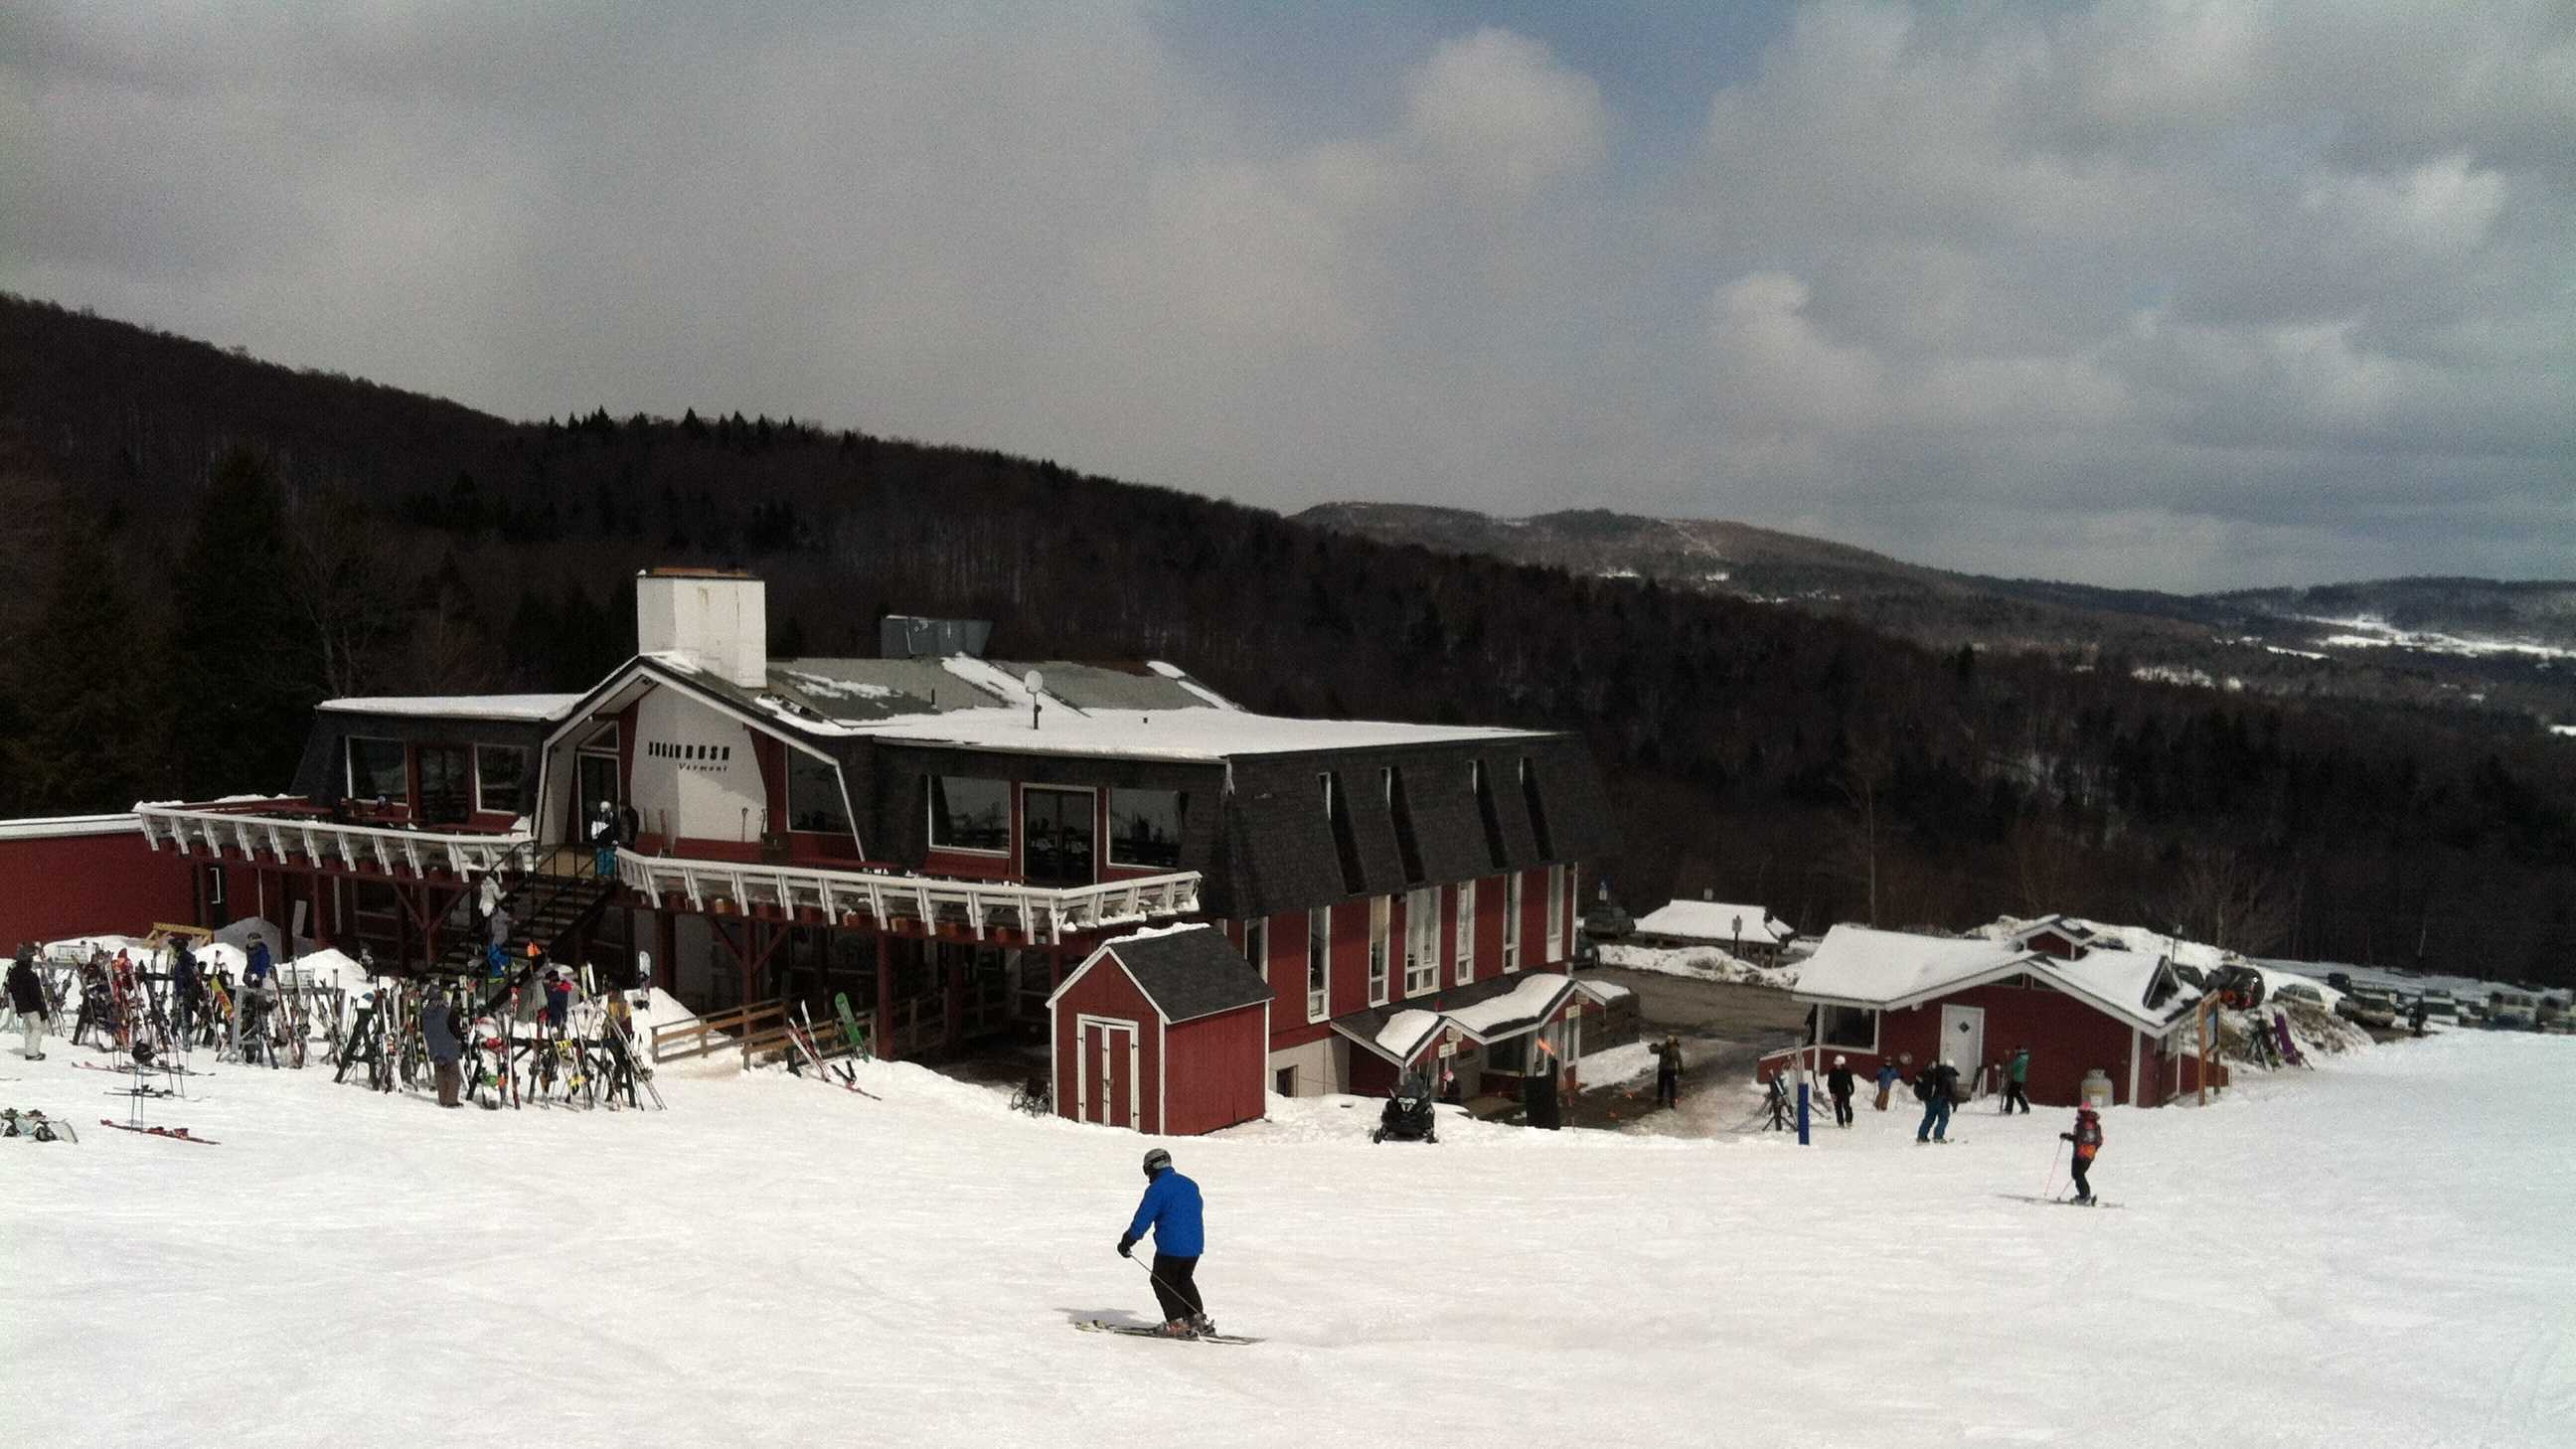 Skiing at Sugarbush